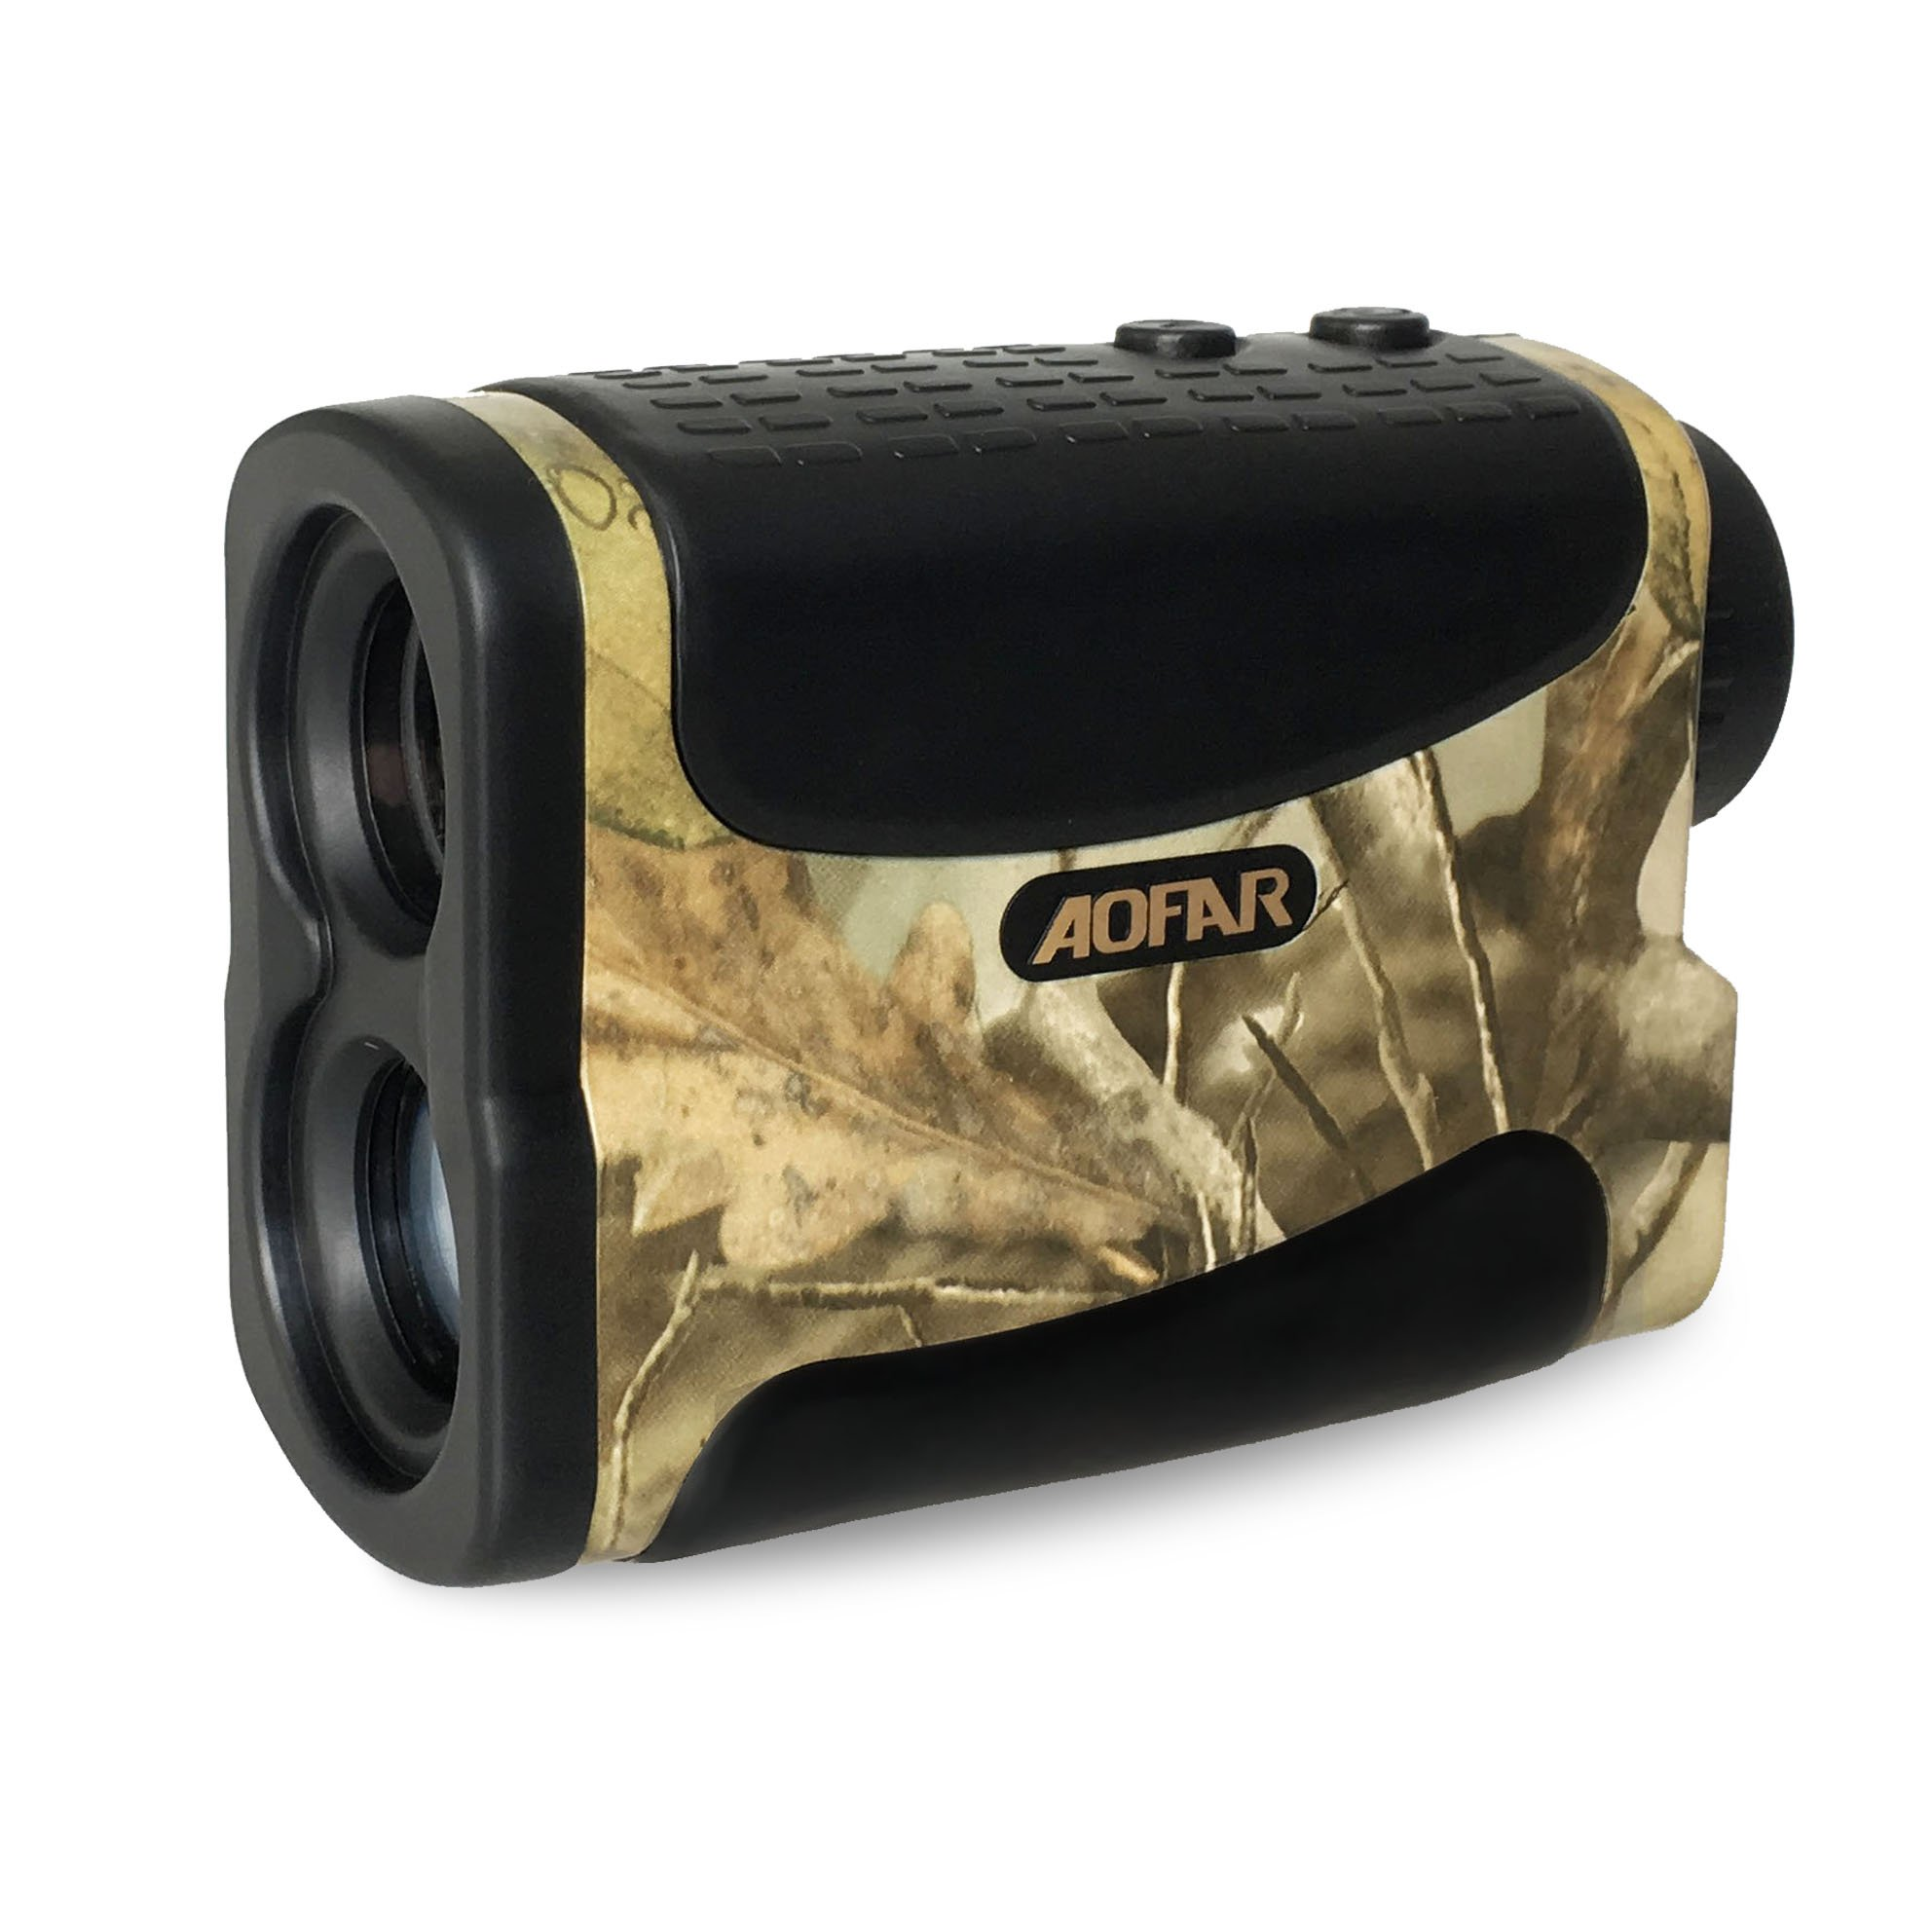 AOFAR Hunting Archery Range Finder-700 Yards Waterproof Rangefinder for Bow Hunting with Range Scan Fog and Speed Mode, Free Battery, Carrying Case by AOFAR